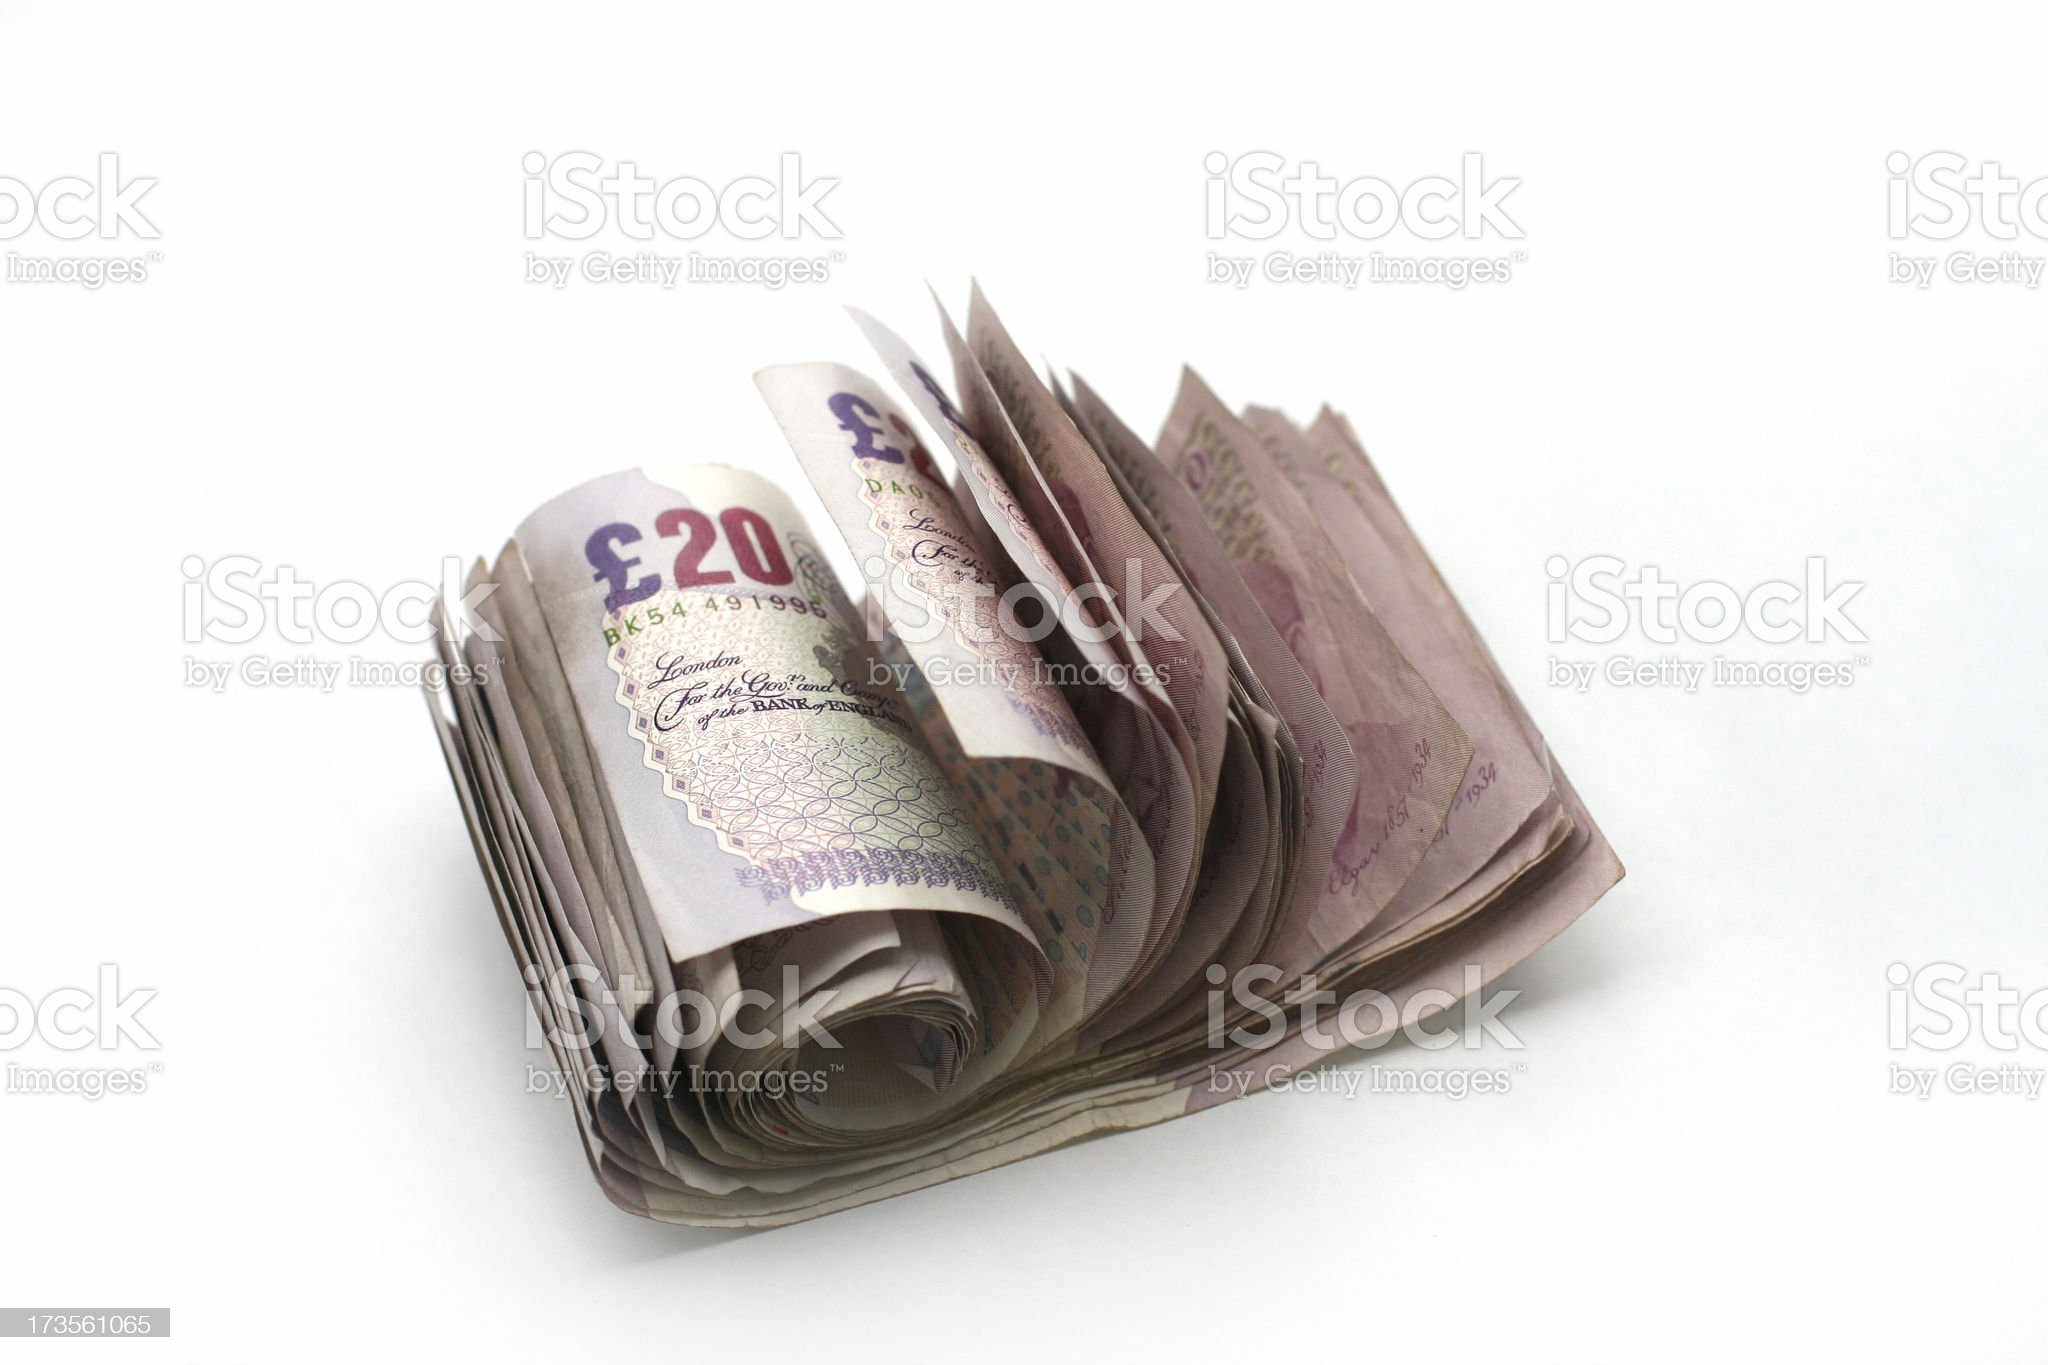 Cash roll royalty-free stock photo